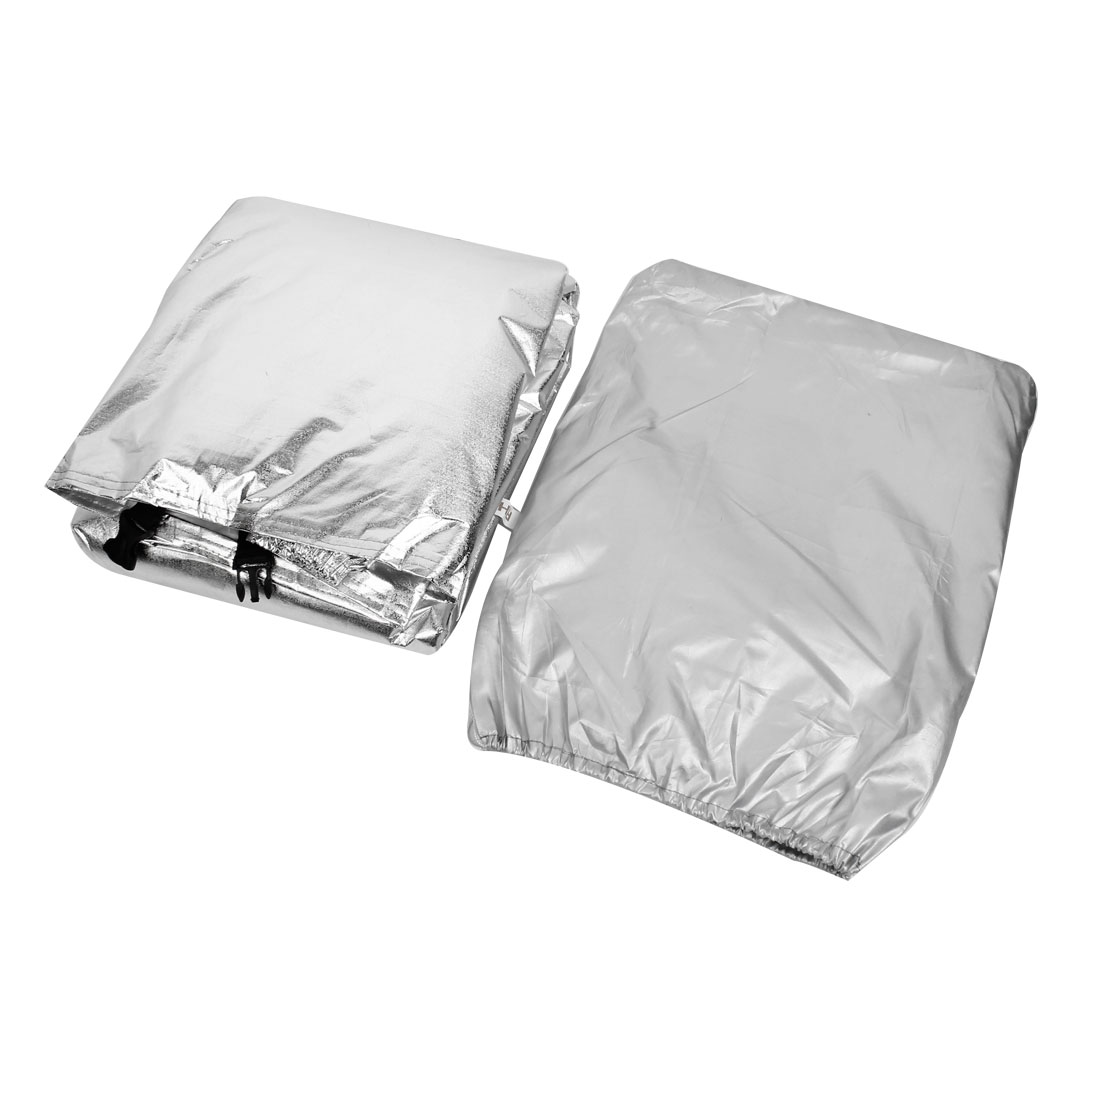 Silver Tone Waterproof Aluminum Foil Elasticated Motorcycle Cover 245cm Length